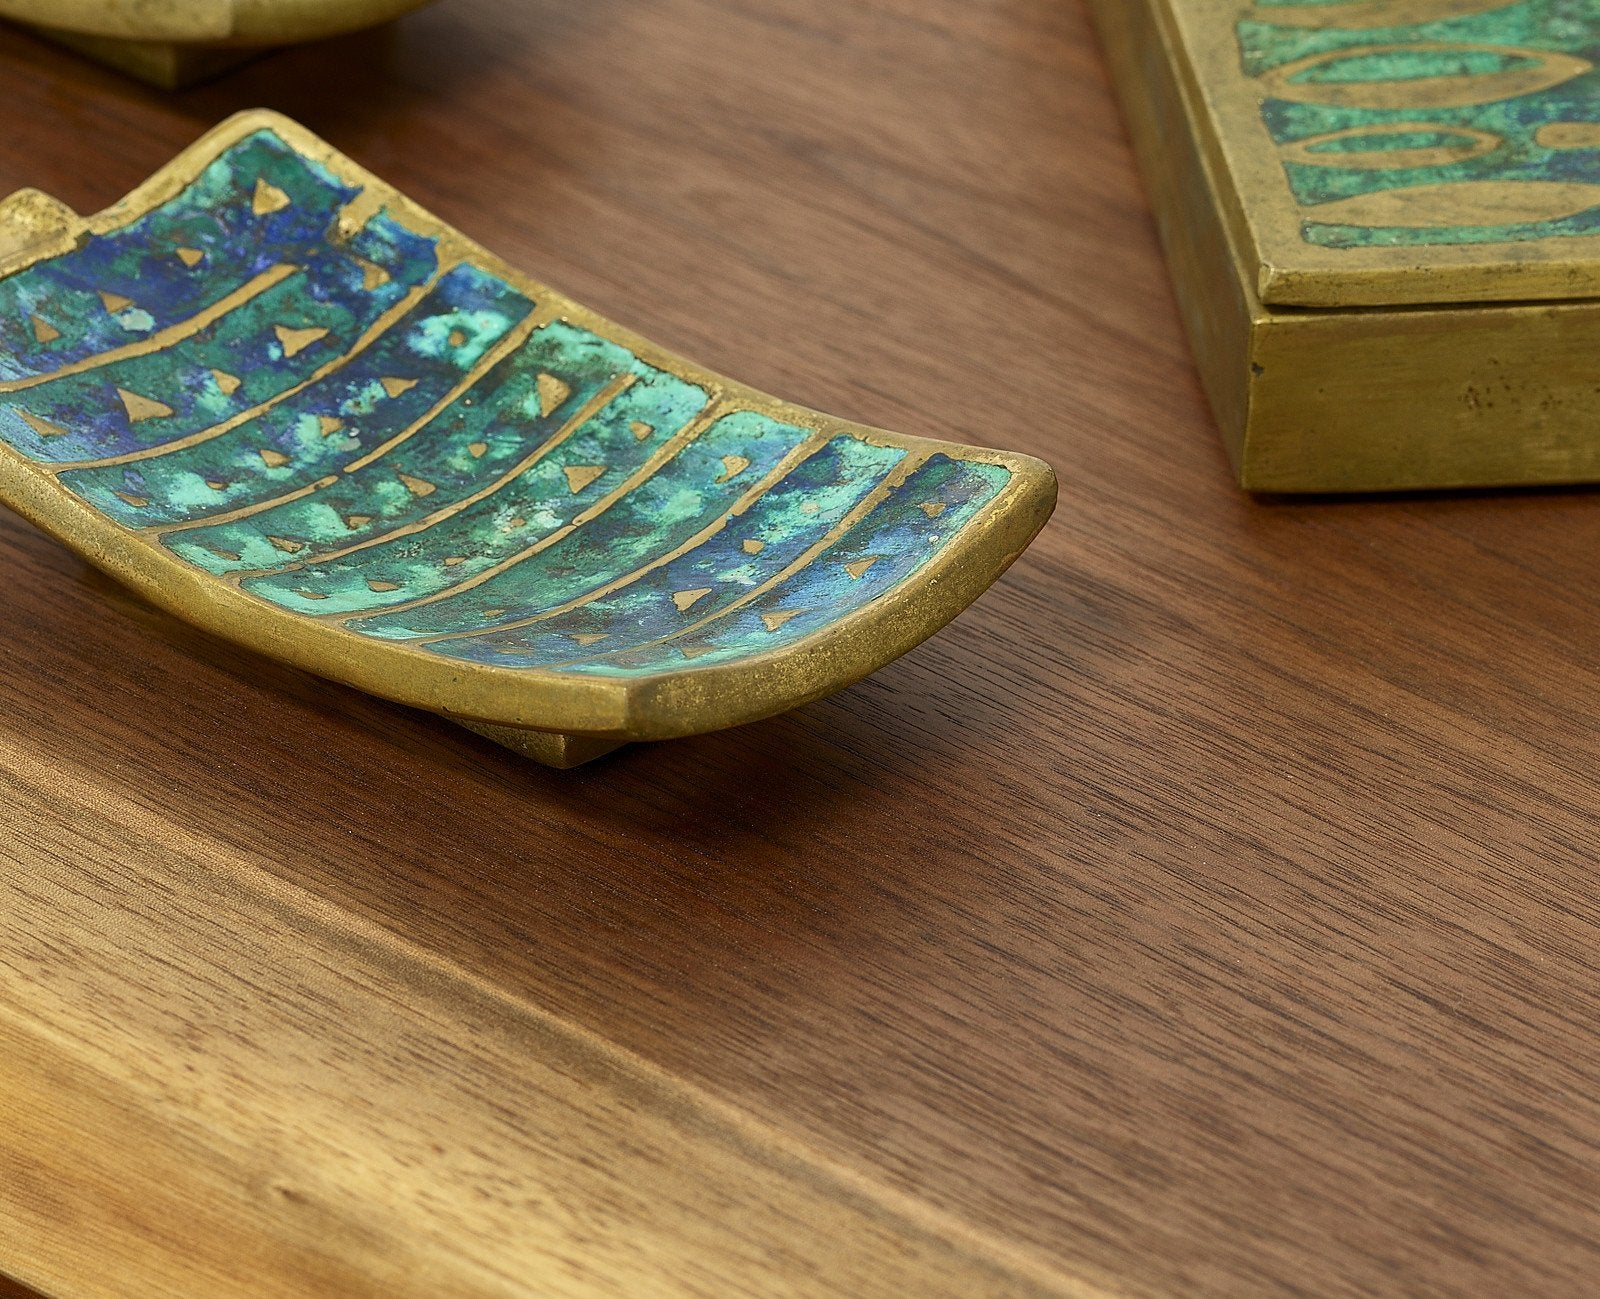 Pepe Mendoza Brass and Ceramic Dish, Pair, circa 1950s